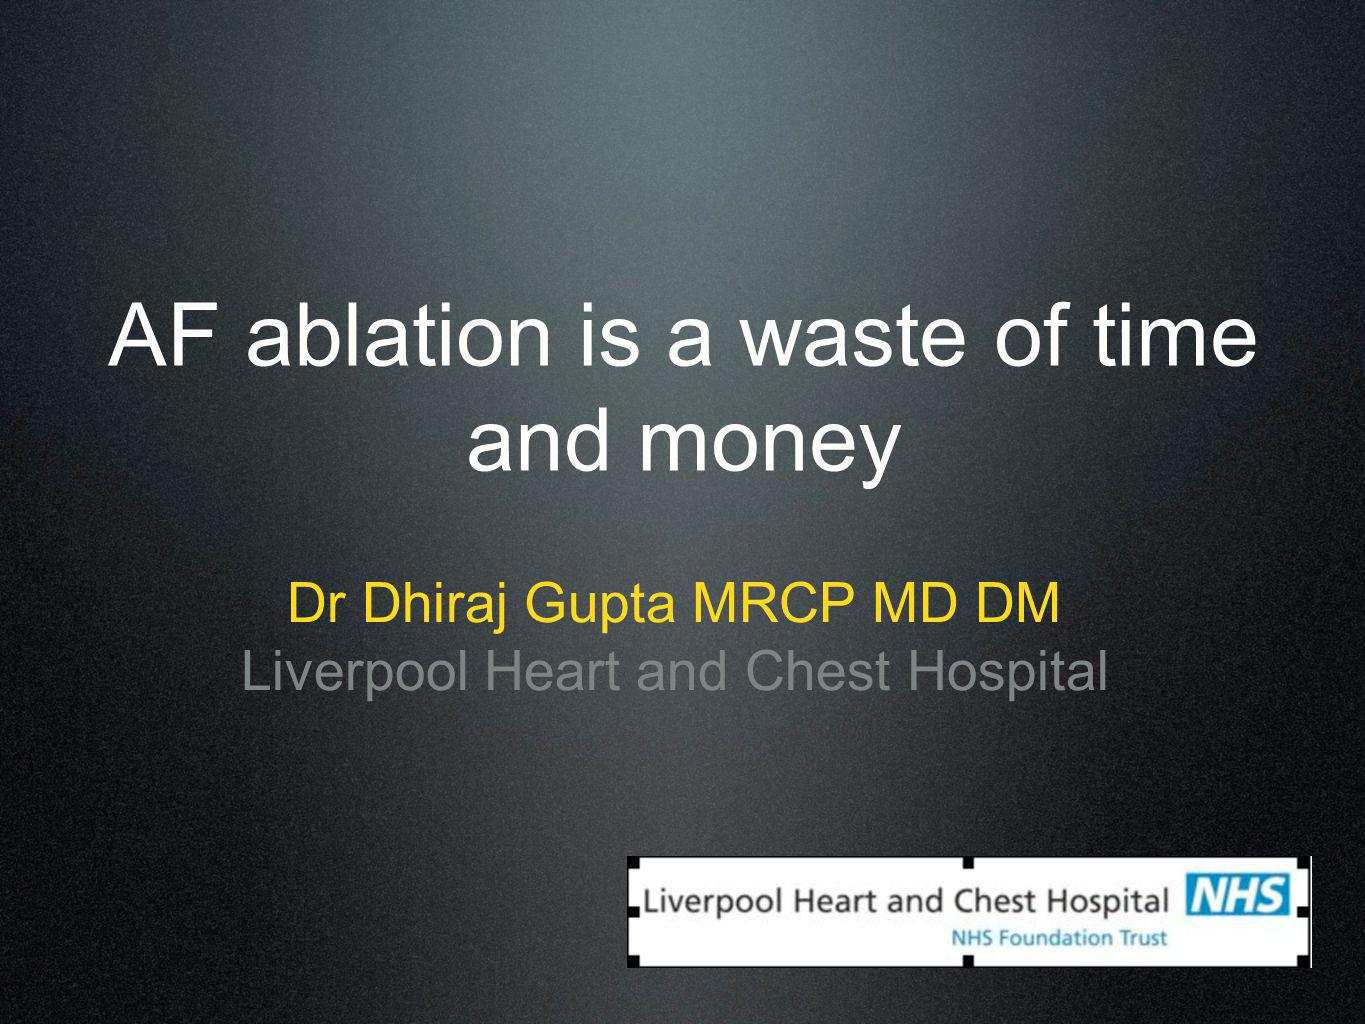 AF ablation is a waste of time and money